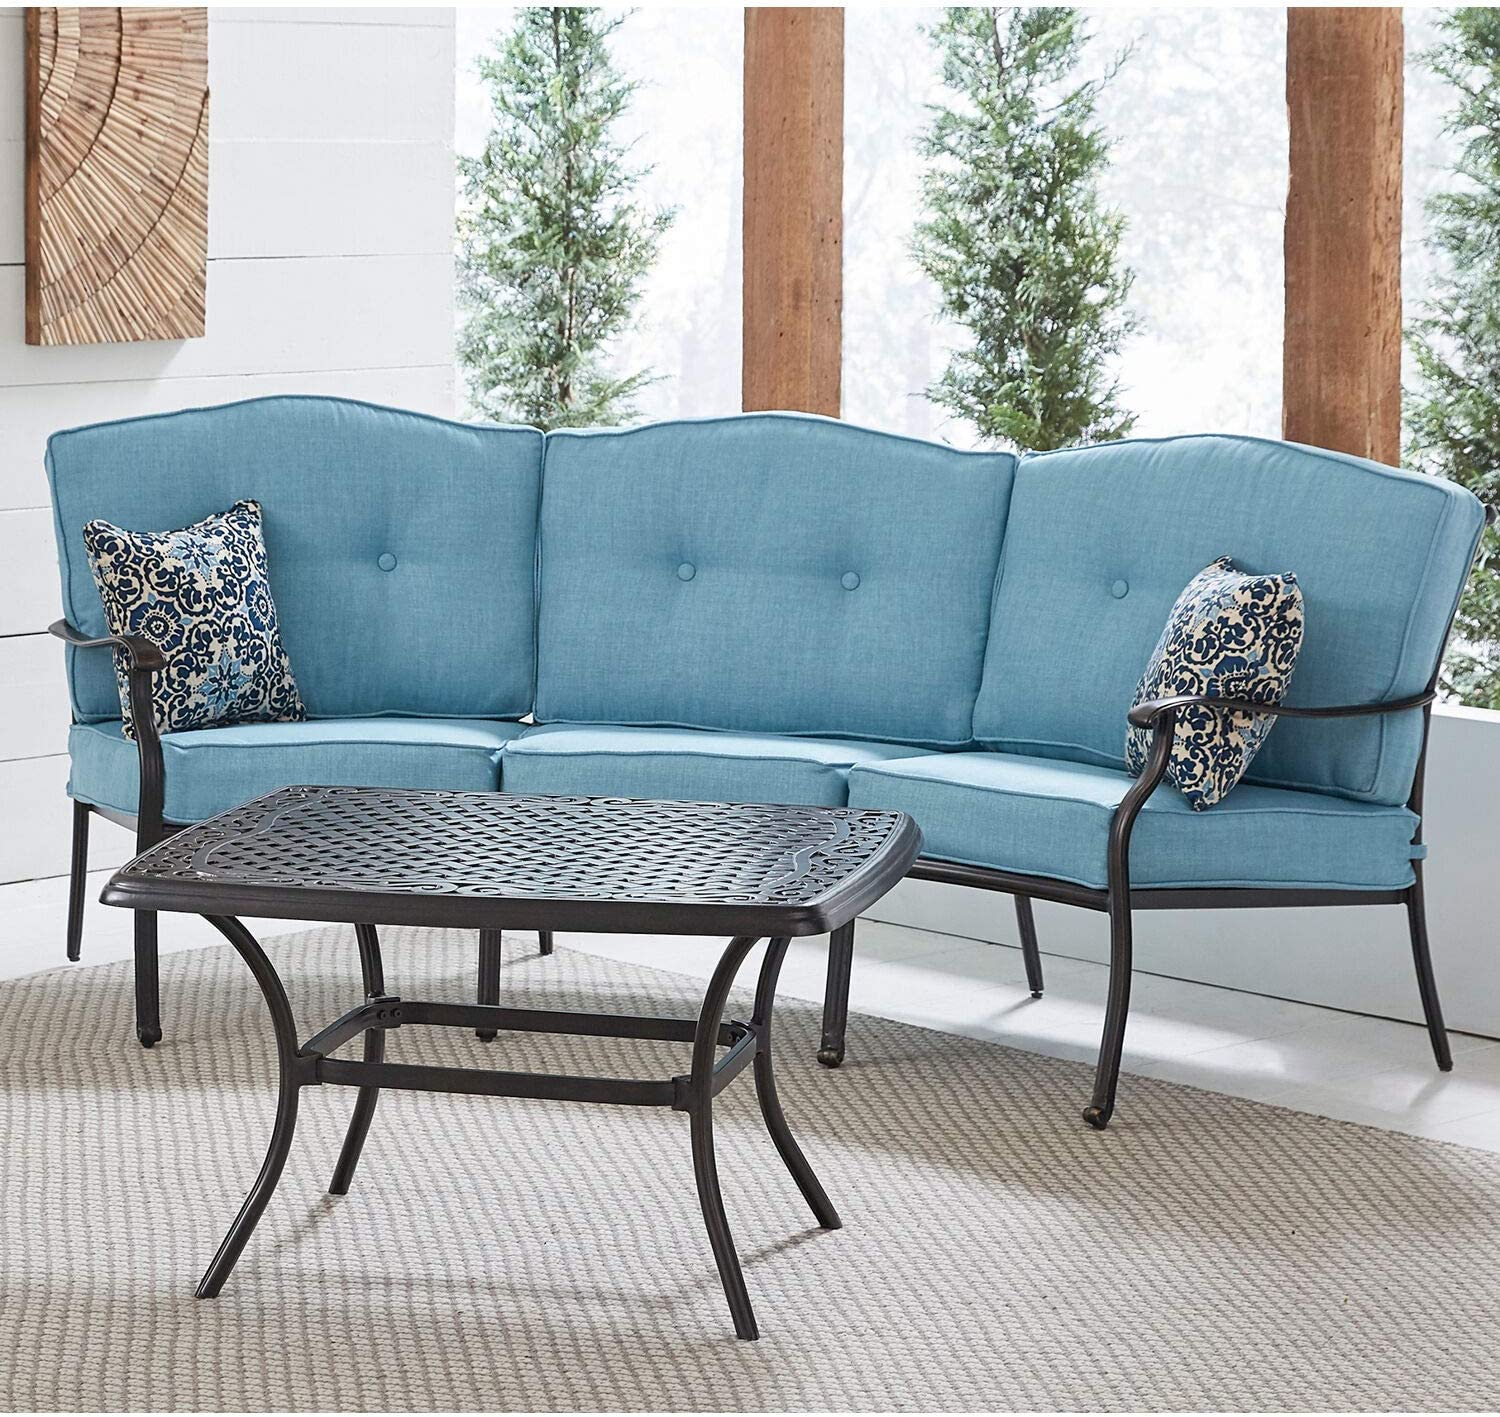 Hanover Traditions 2-Piece Patio Set with Cast-Top Coffee Table and Crescent Sofa in Blue, TRAD2PCCT-BLU Outdoor Furniture